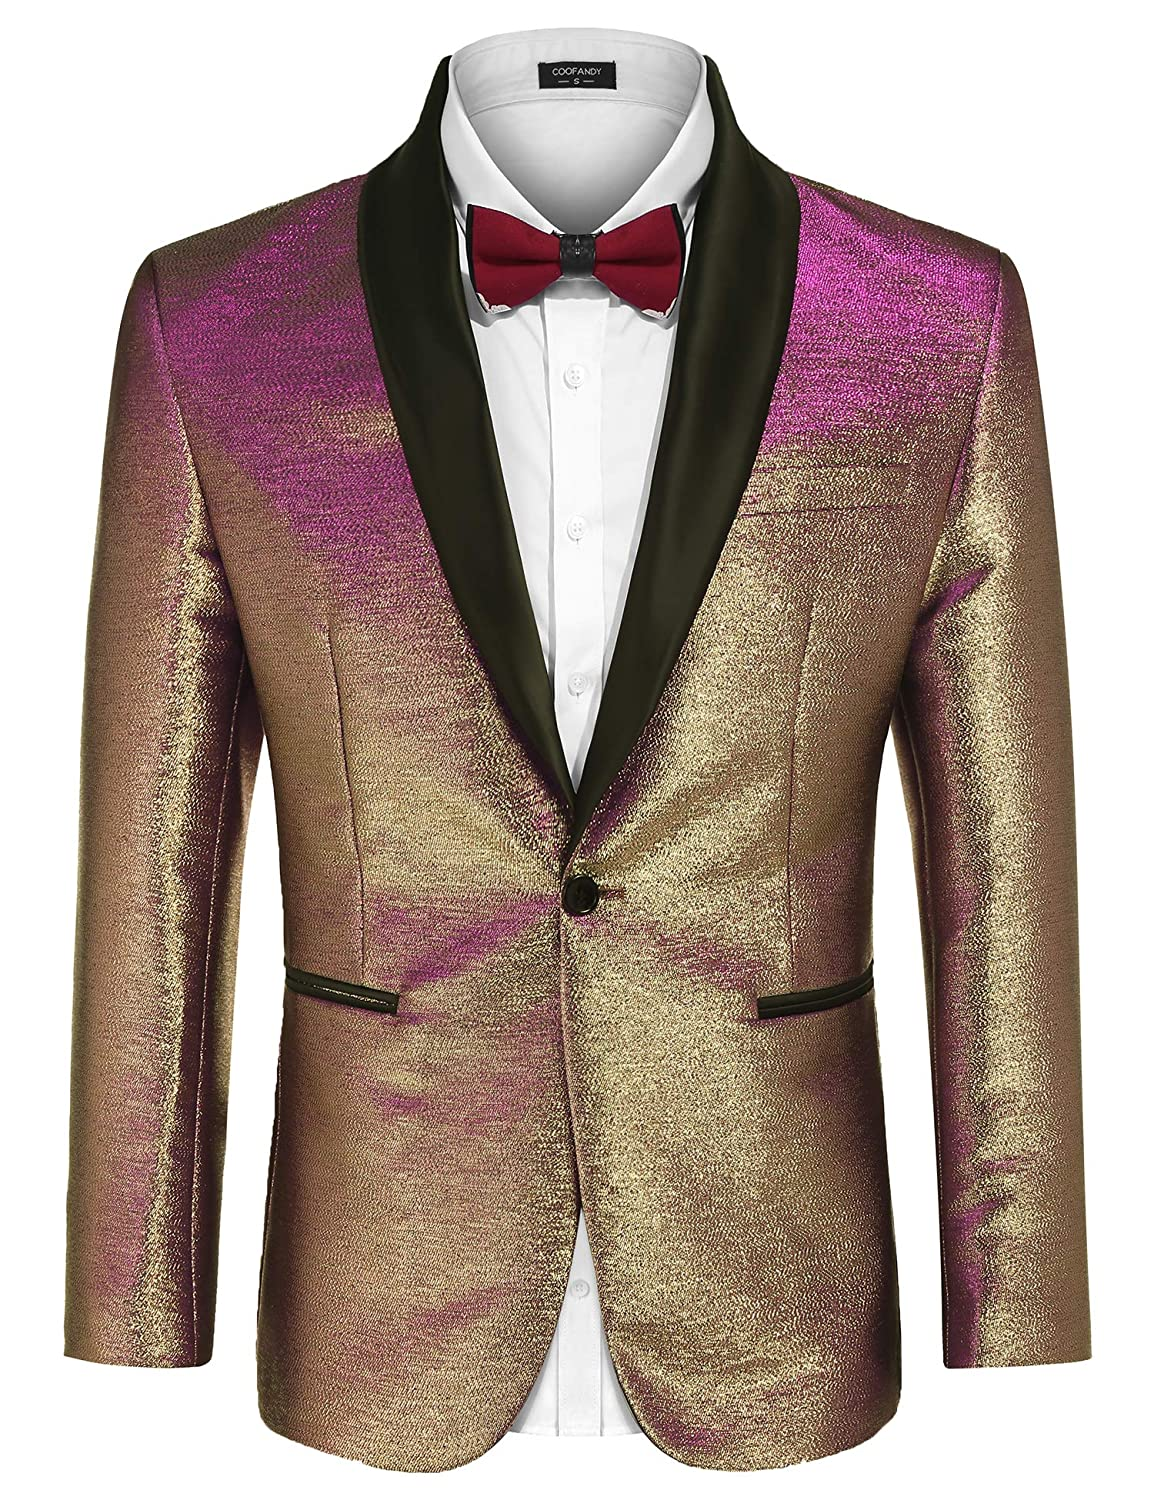 d387a36b266 COOFANDY Men s Fashion Suit Jacket Blazer One Button Luxury Weddings Party  Dinner Prom Tuxedo Gold Silver at Amazon Men s Clothing store